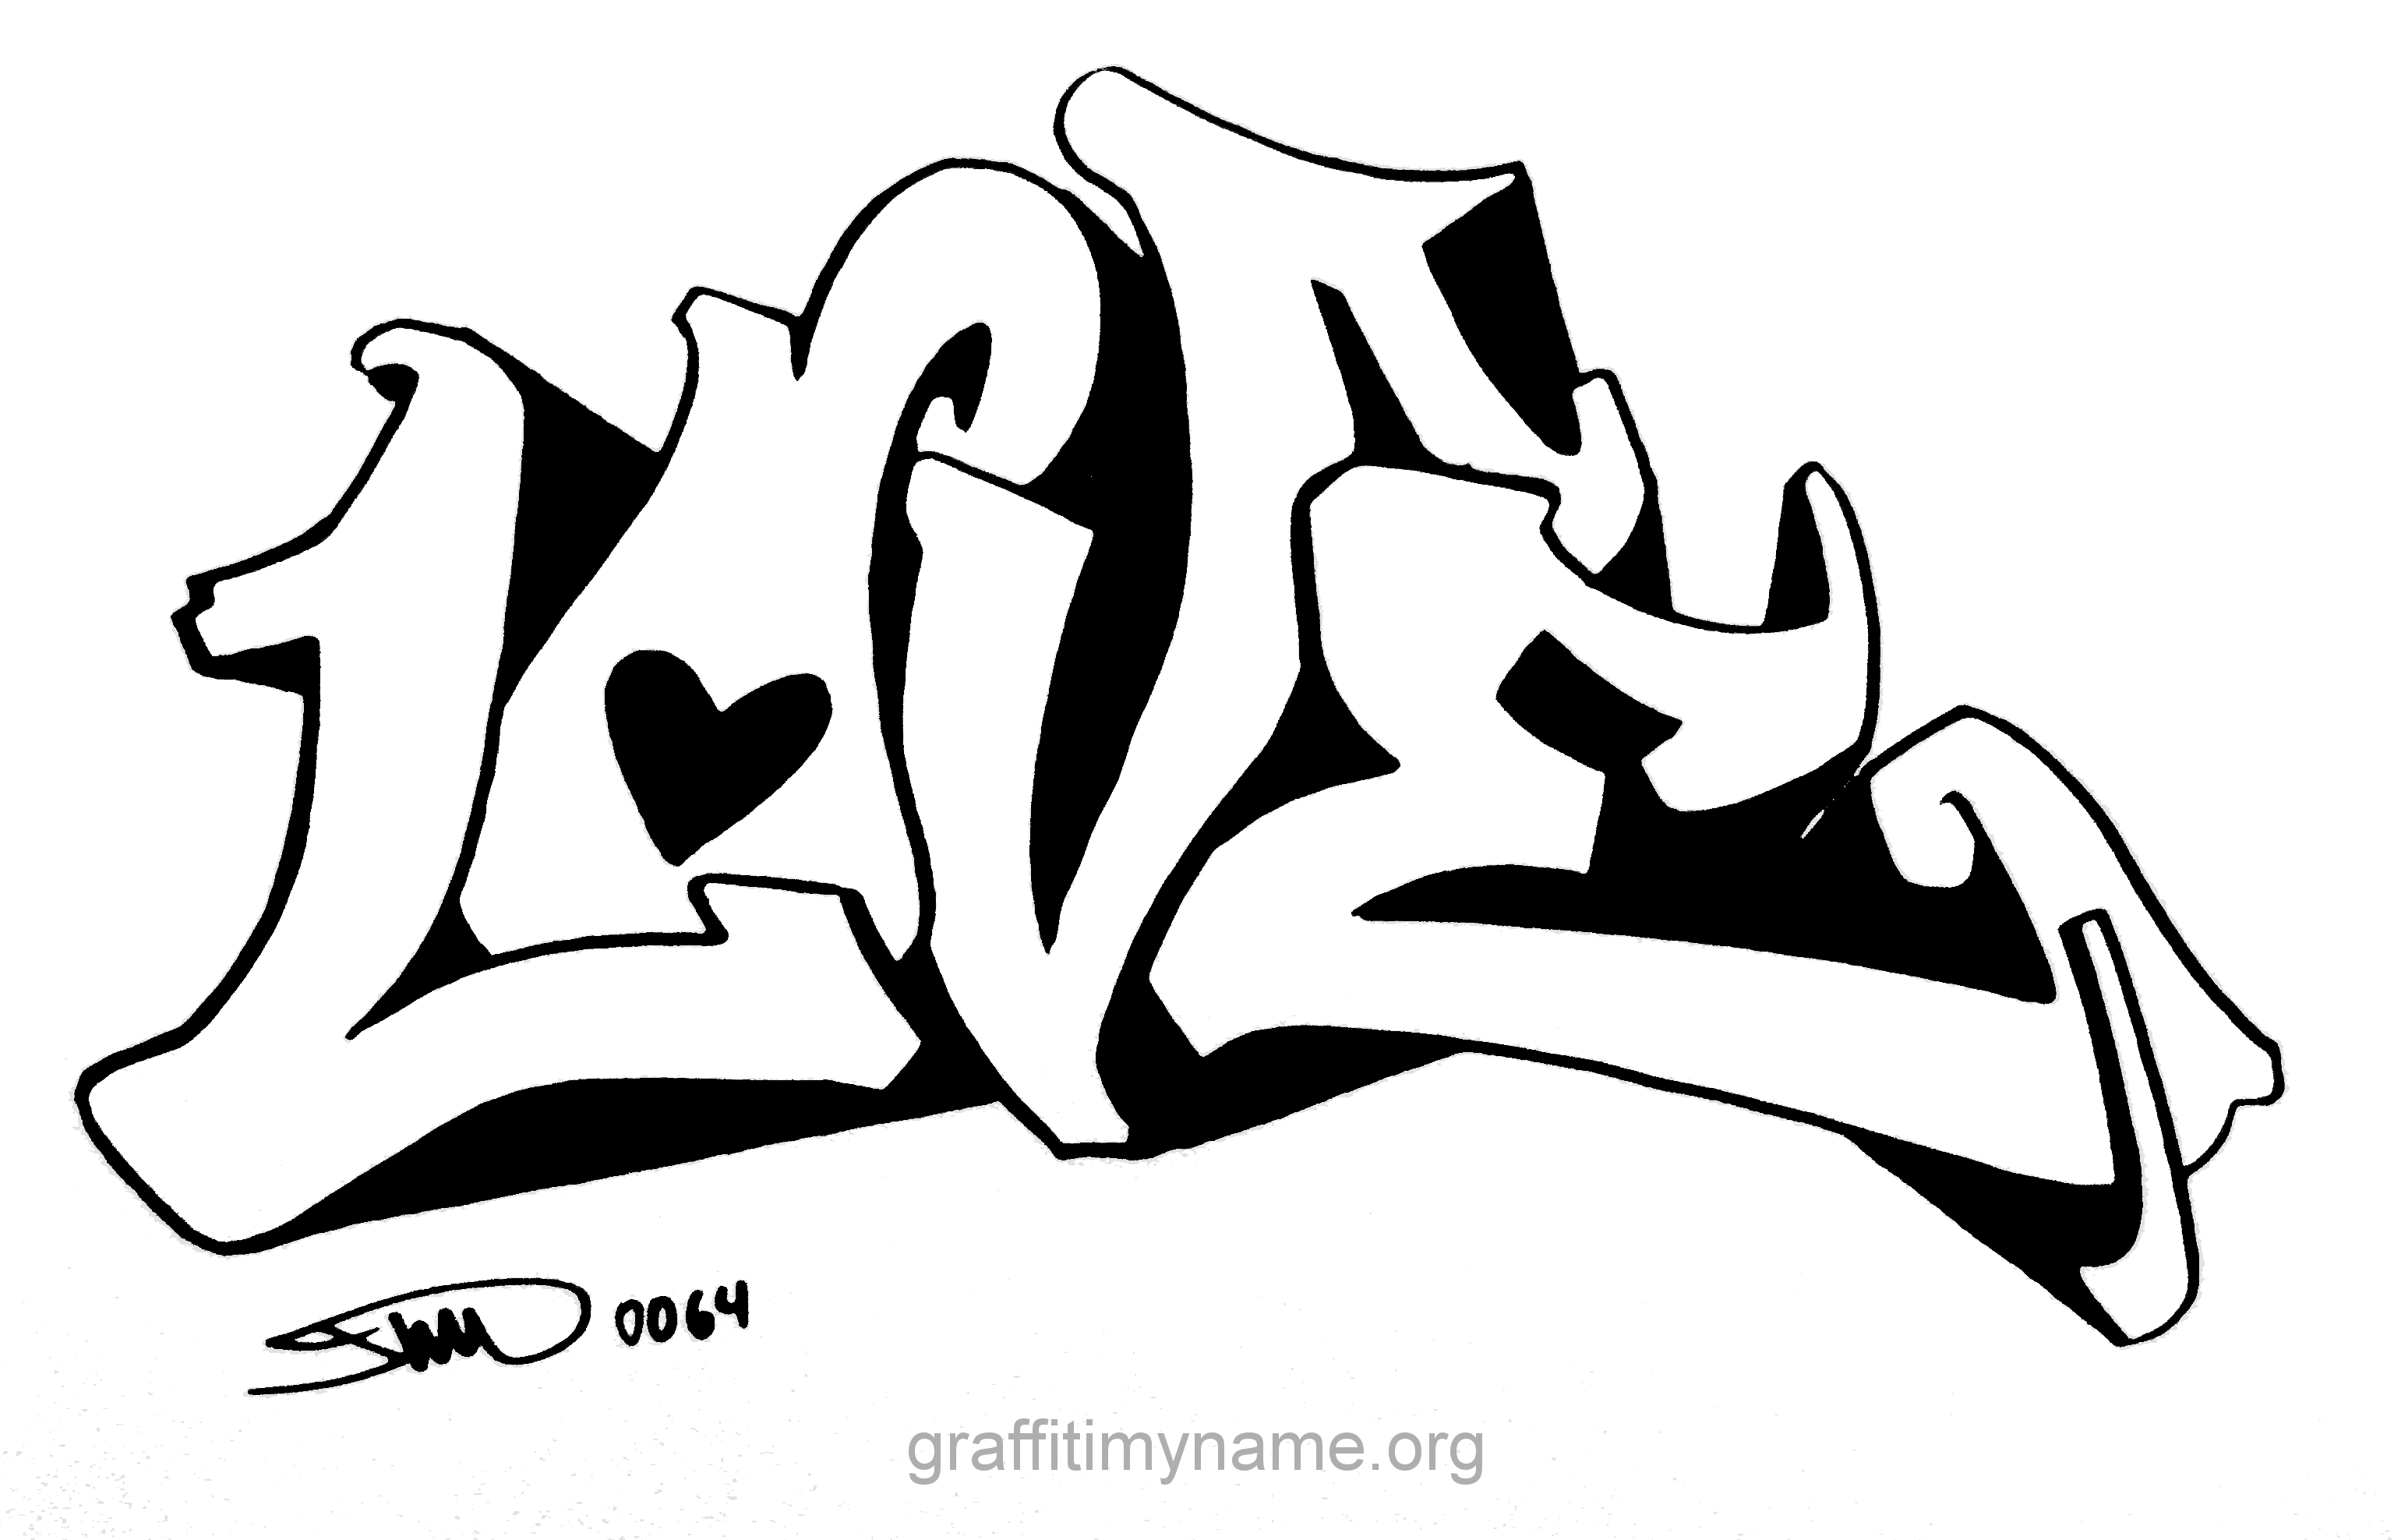 I Love You Graffiti Coloring Pages Cute Coloring Card From User